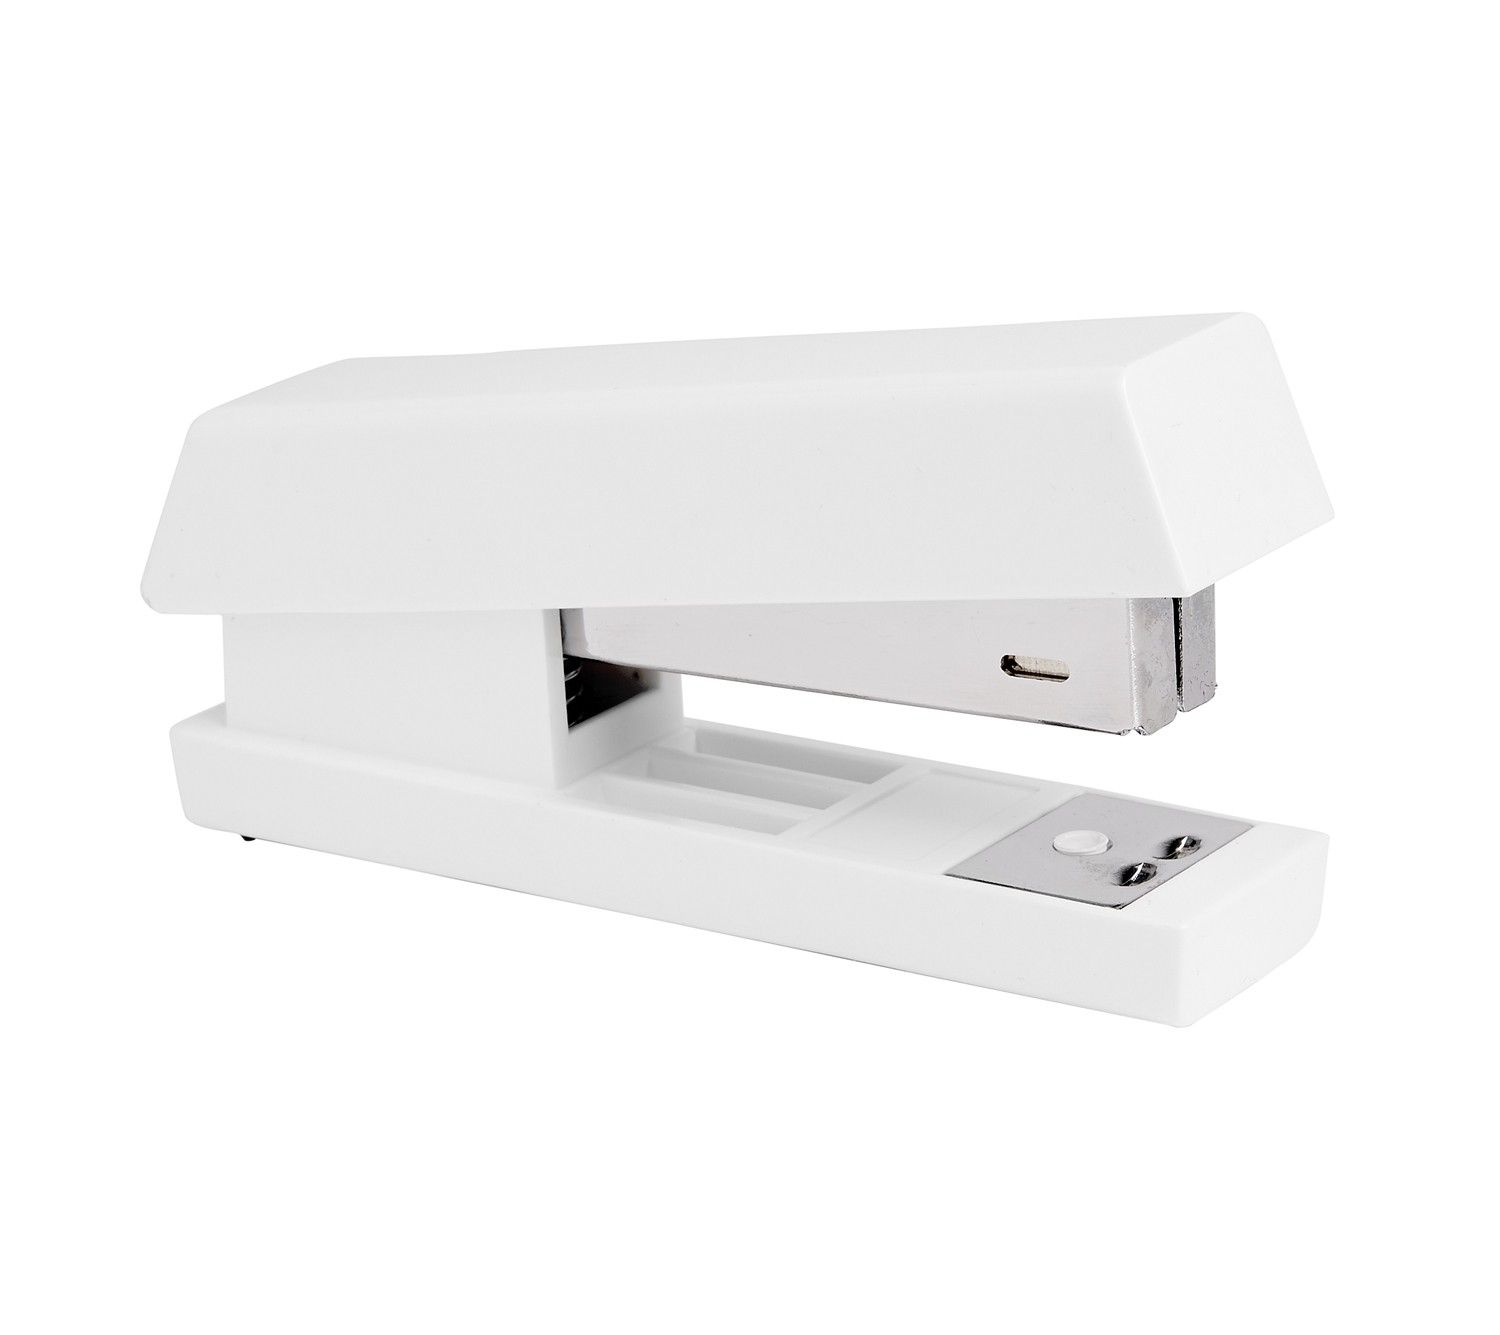 Matching Office Desk Accessories Stapler White School Supply Pinterest Stapler Tape